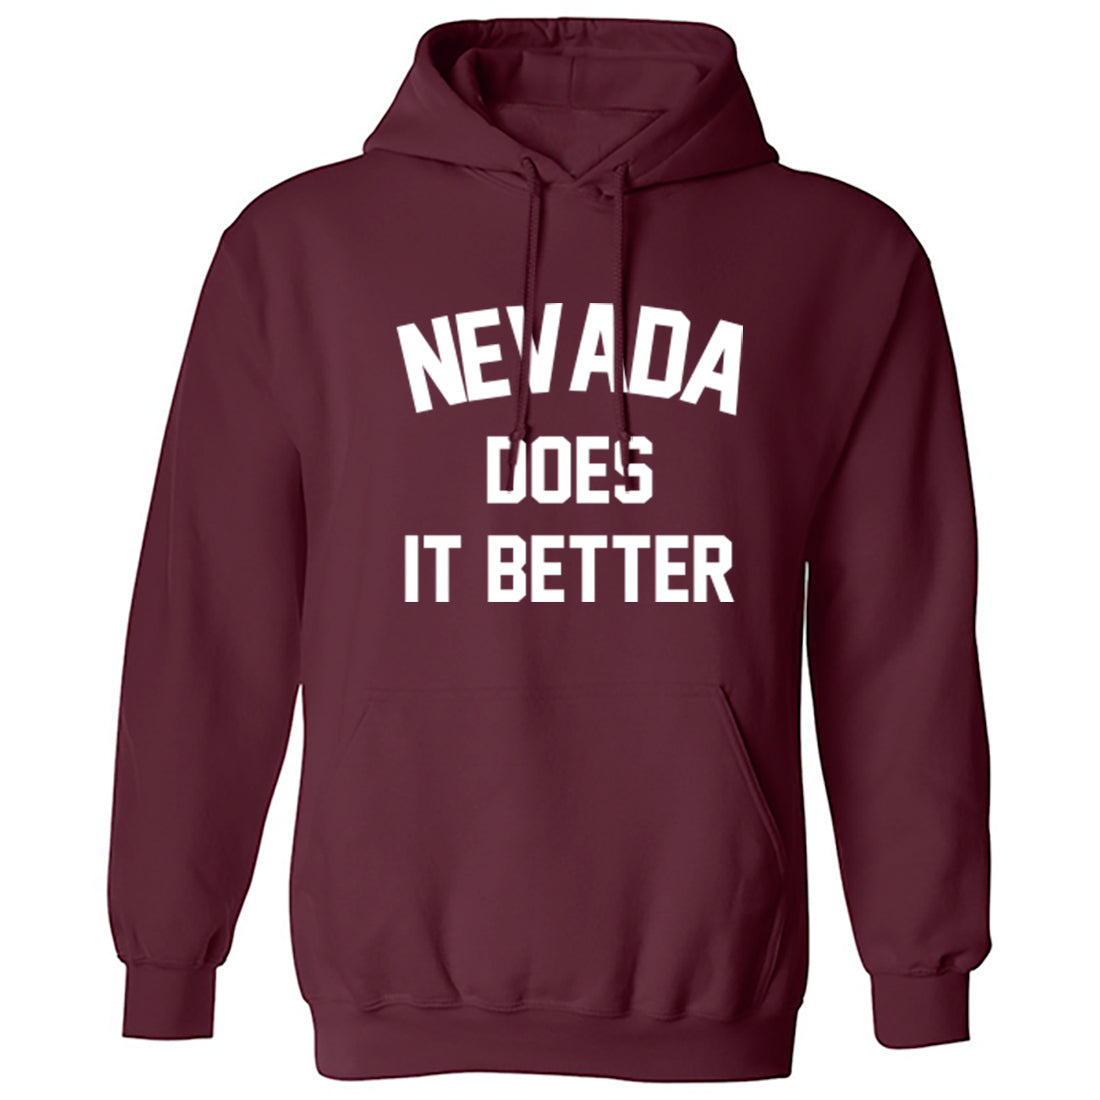 Nevada Does Is Better Unisex Hoodie K1156 - Illustrated Identity Ltd.